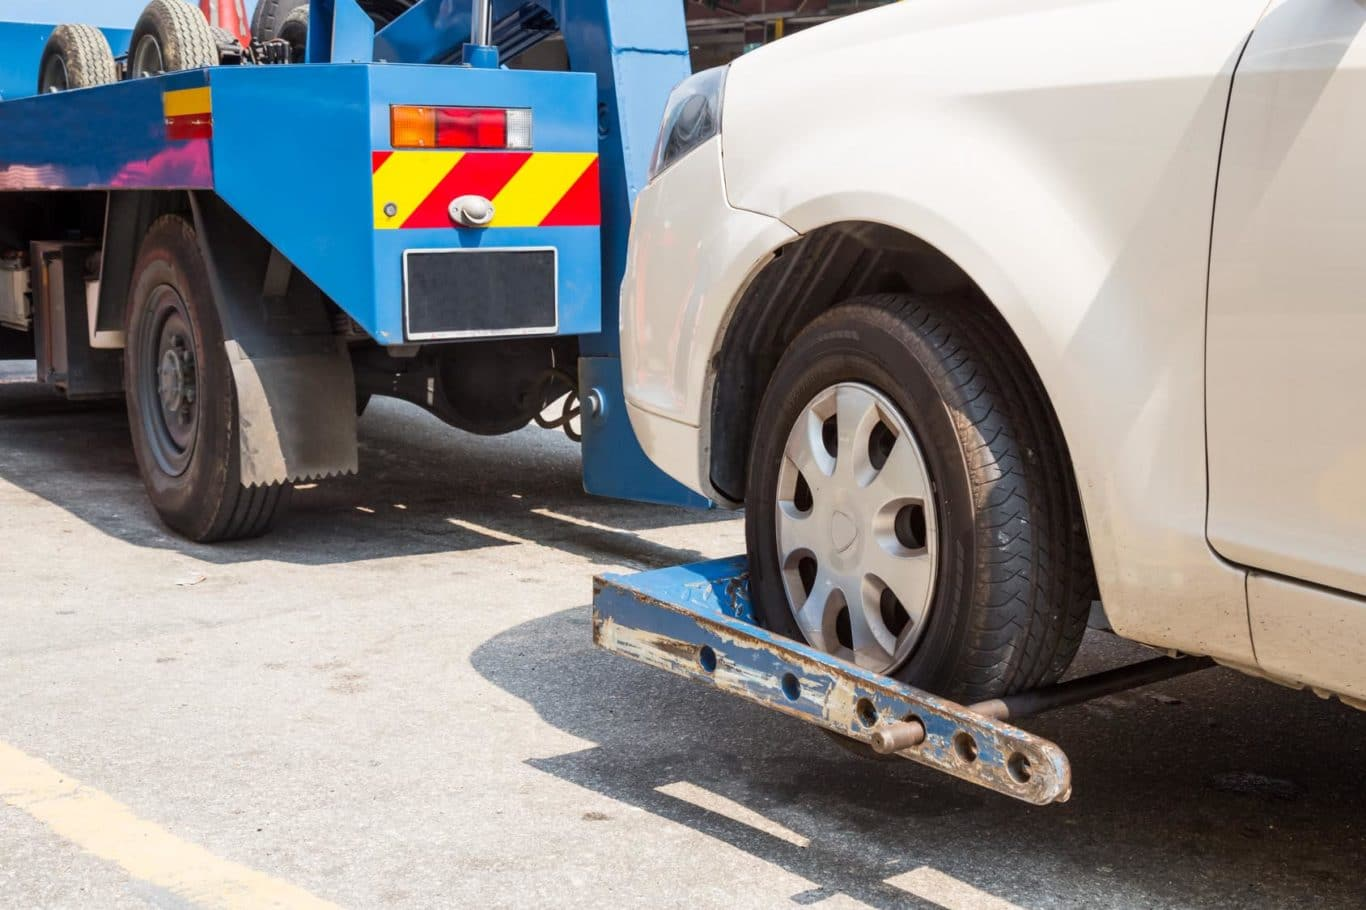 Moone expert Towing And Recovery Dublin services